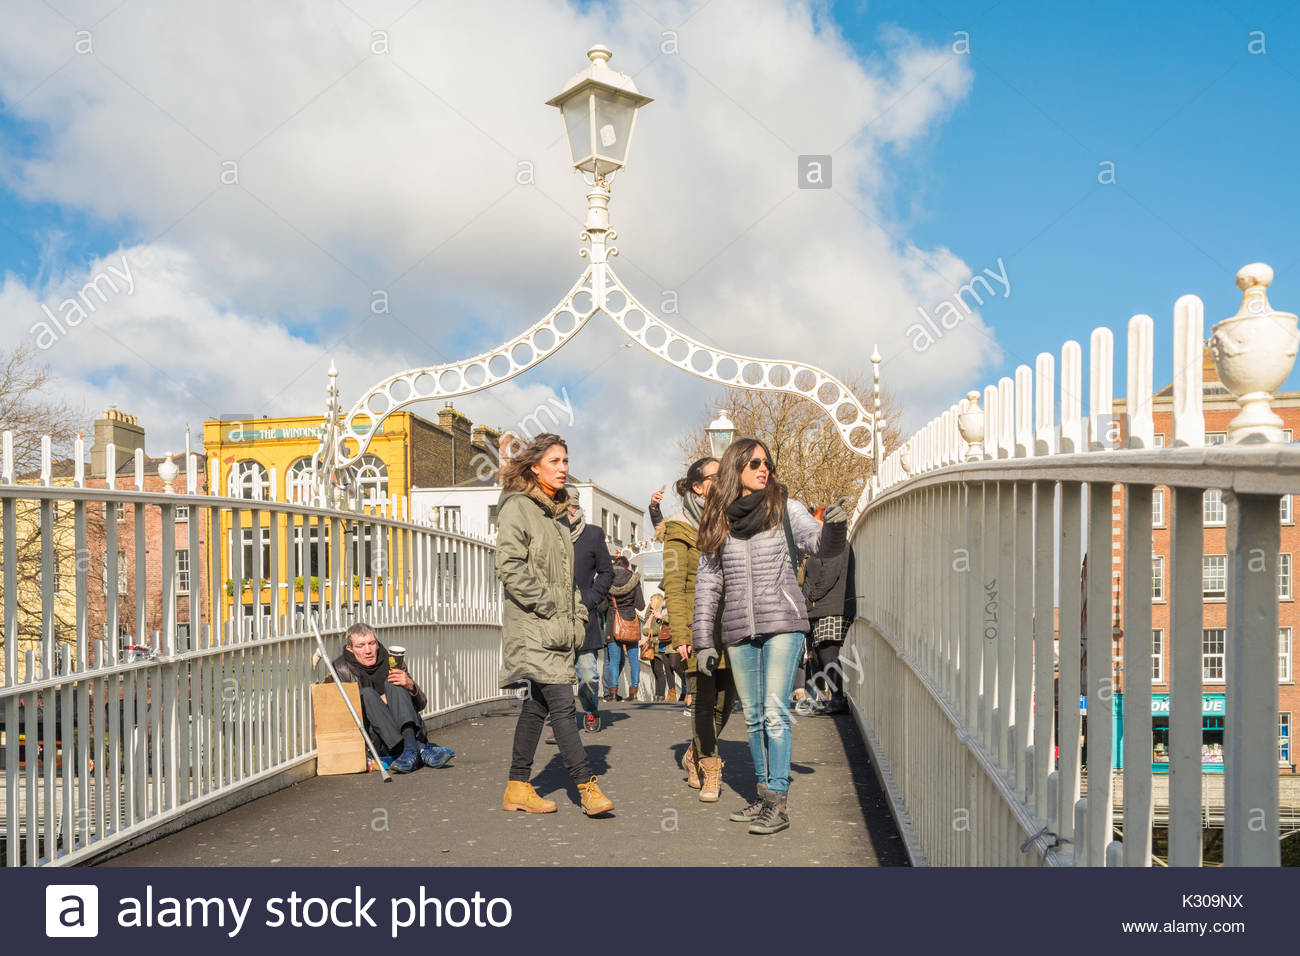 begging in Dublin - beggar and tourists on Ha'penny Bridge, Dublin, Ireland - Stock Image